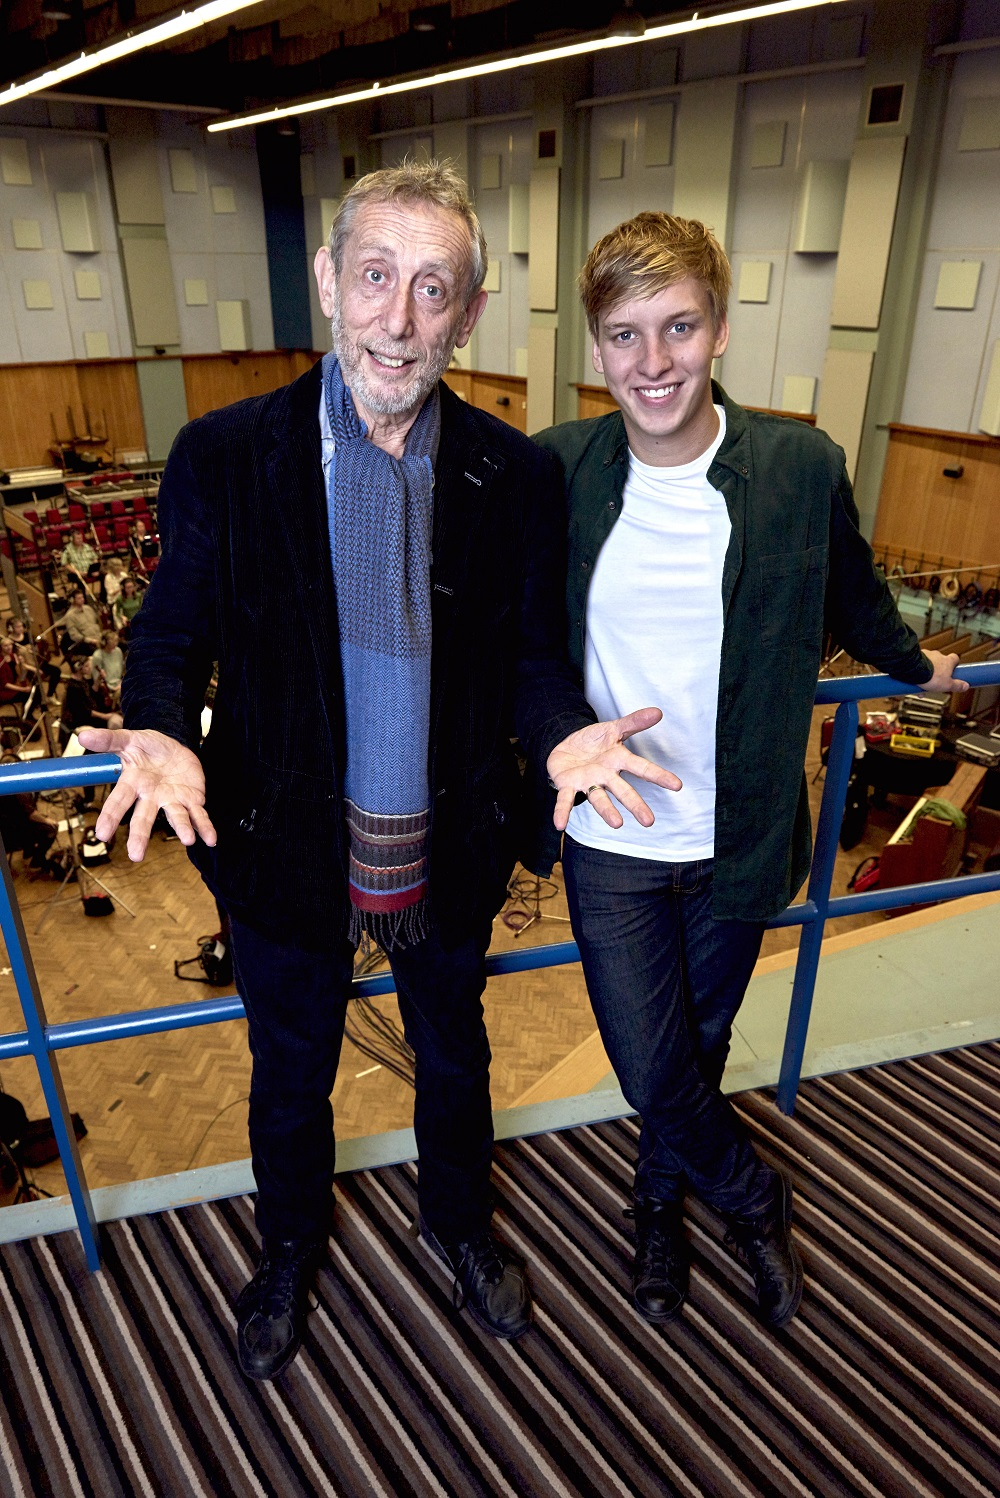 Michael Rosen and George Ezra